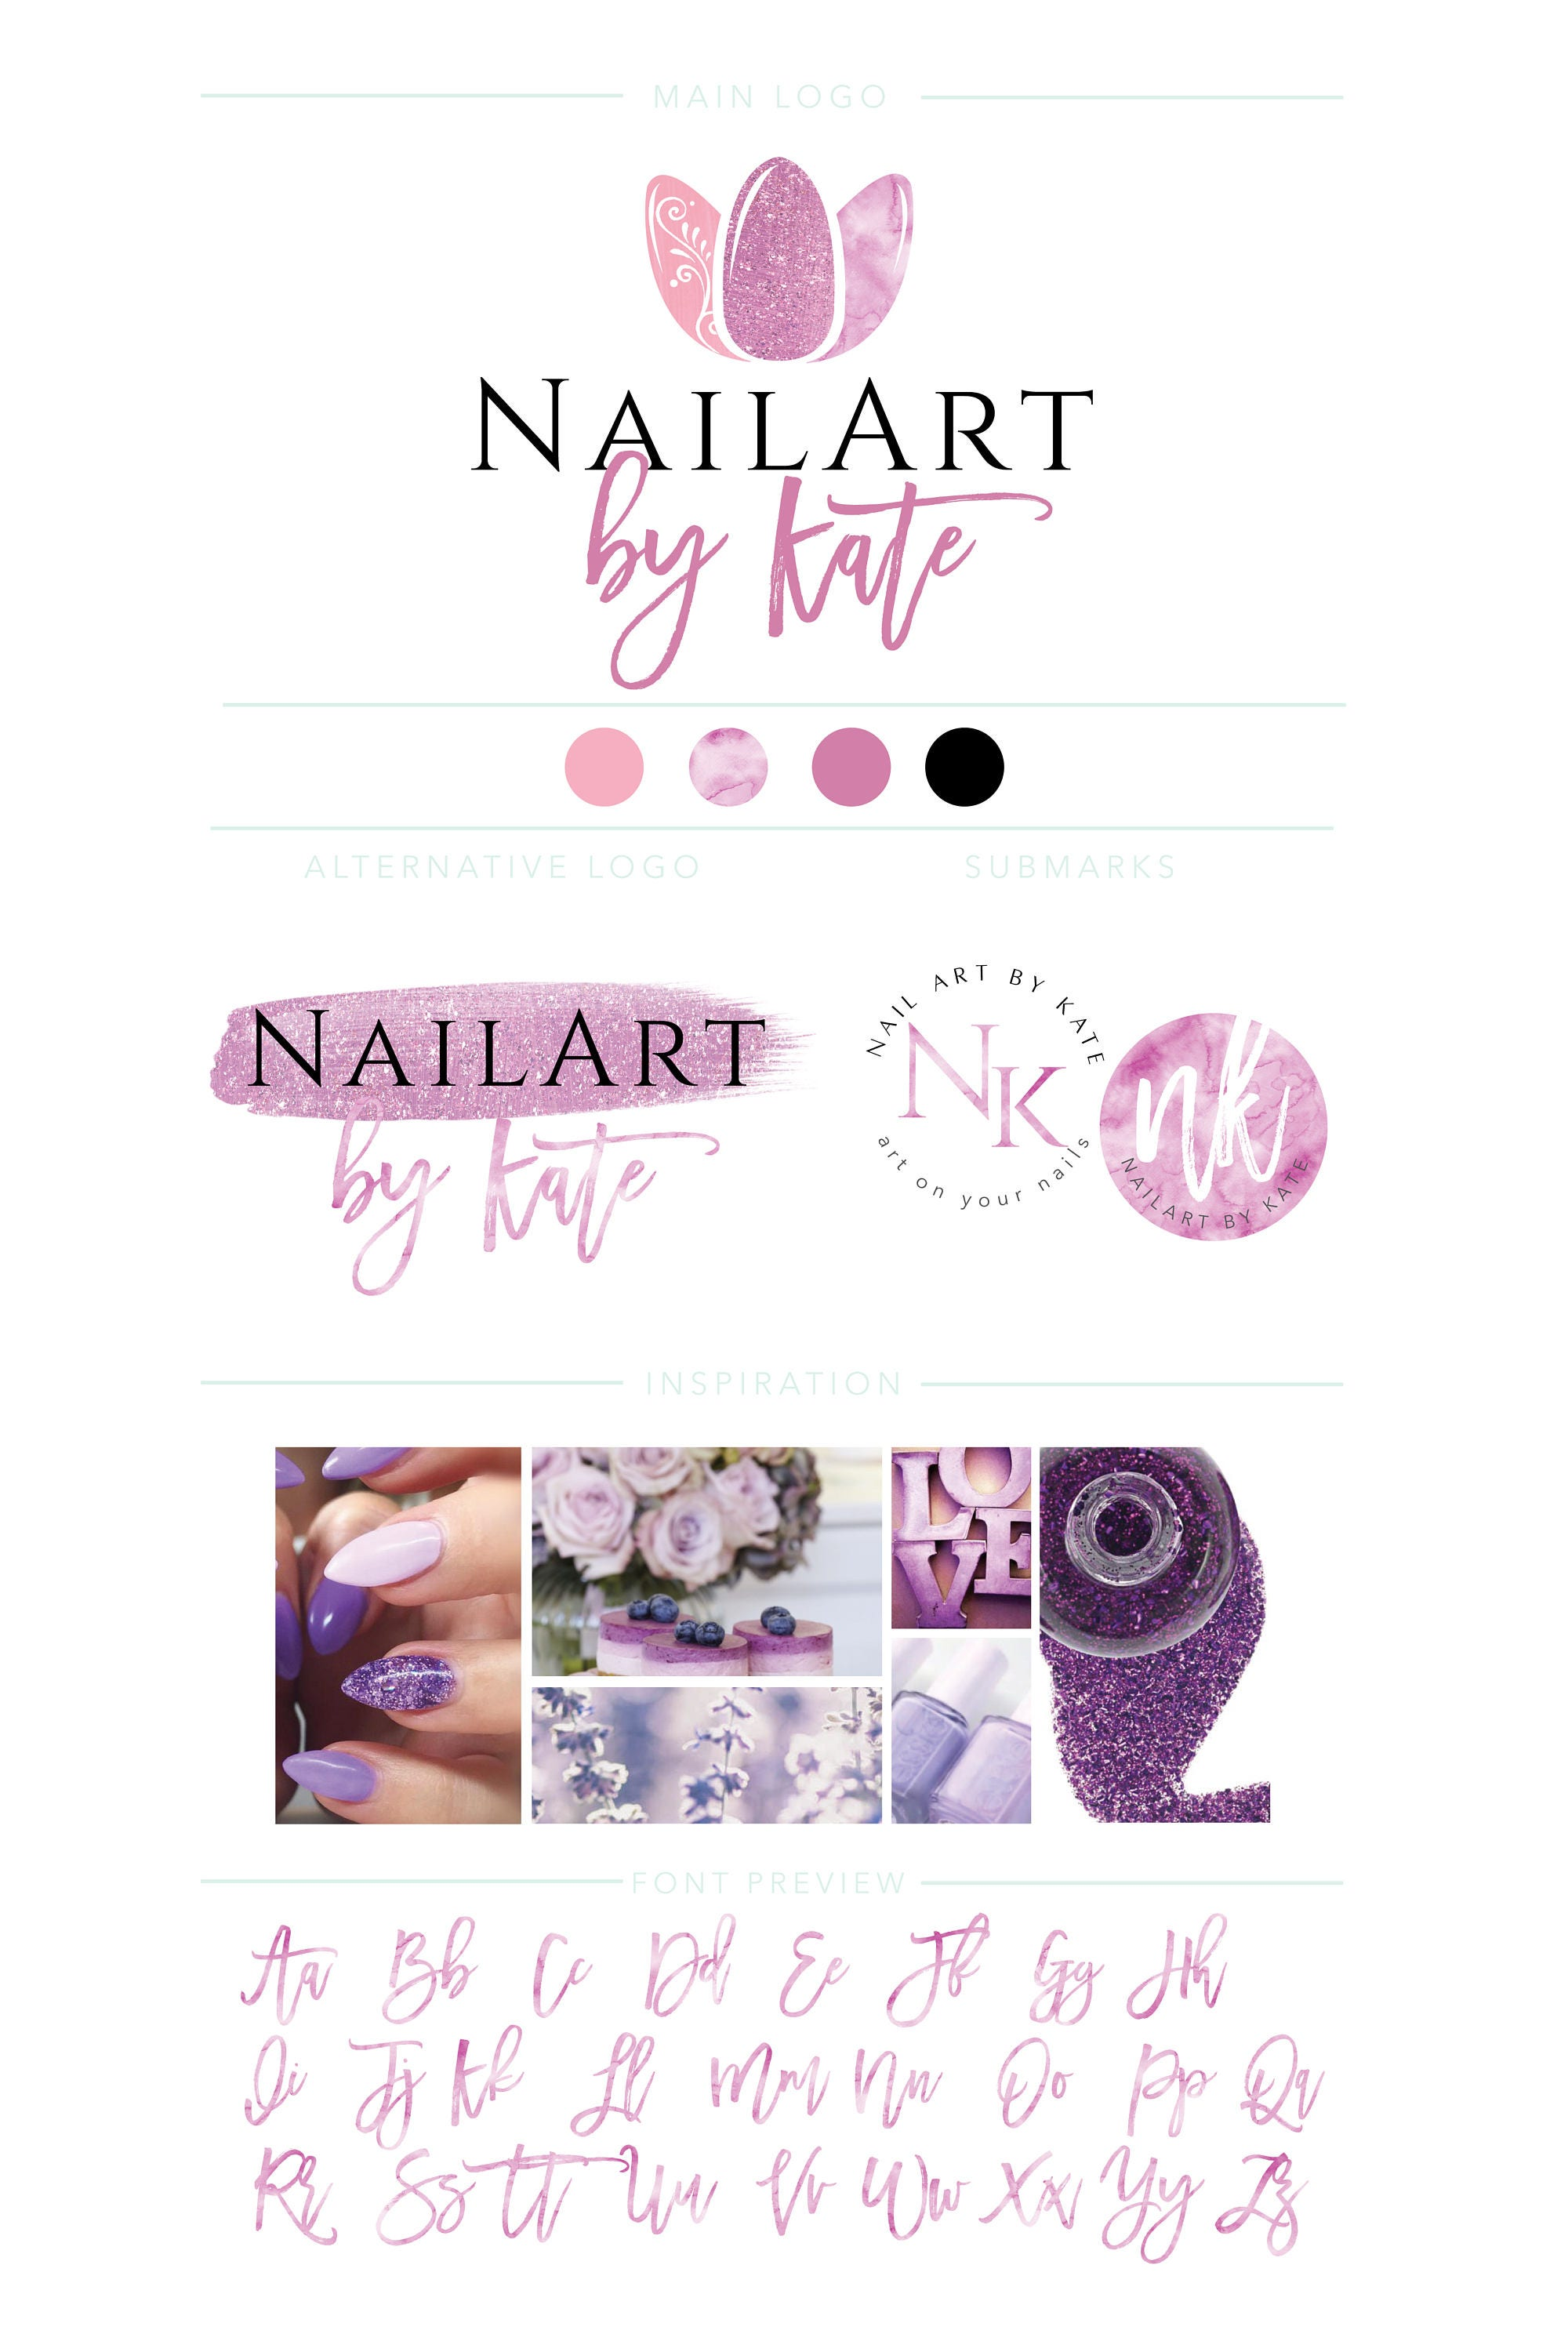 Nail Salon Gel Art Logo Branding Kit, Nail Art Logo, Nail Polish logo kit,  Nail Artist Logo, Watercolor Logo, Beauty Center, Nails Logo